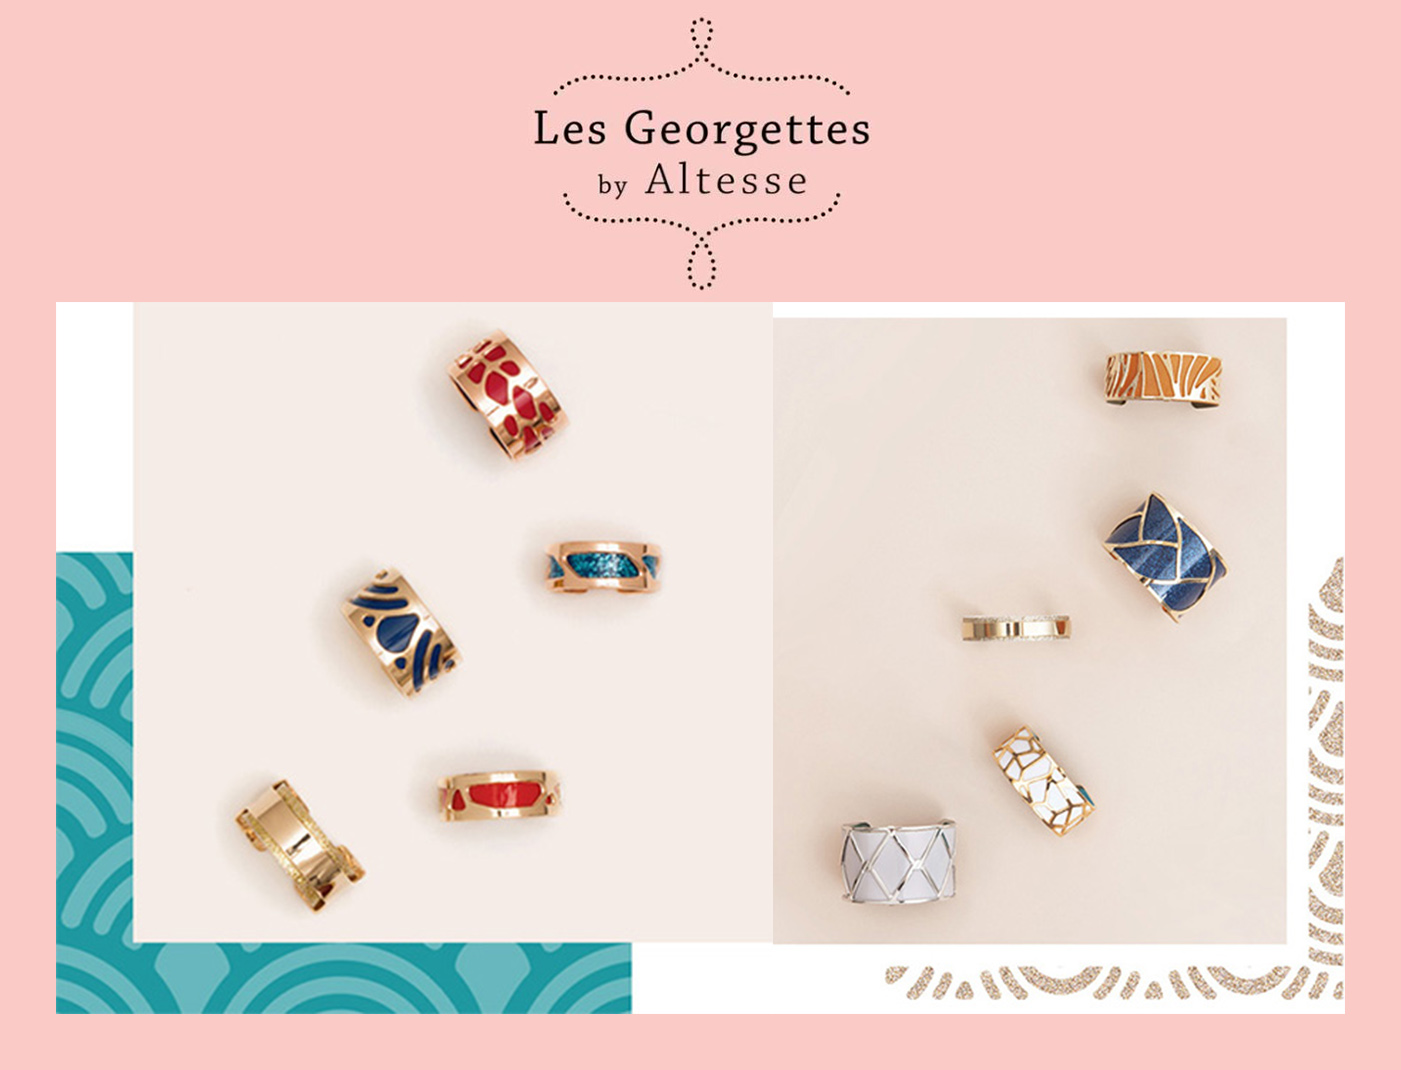 Les Georgettes by Altesse